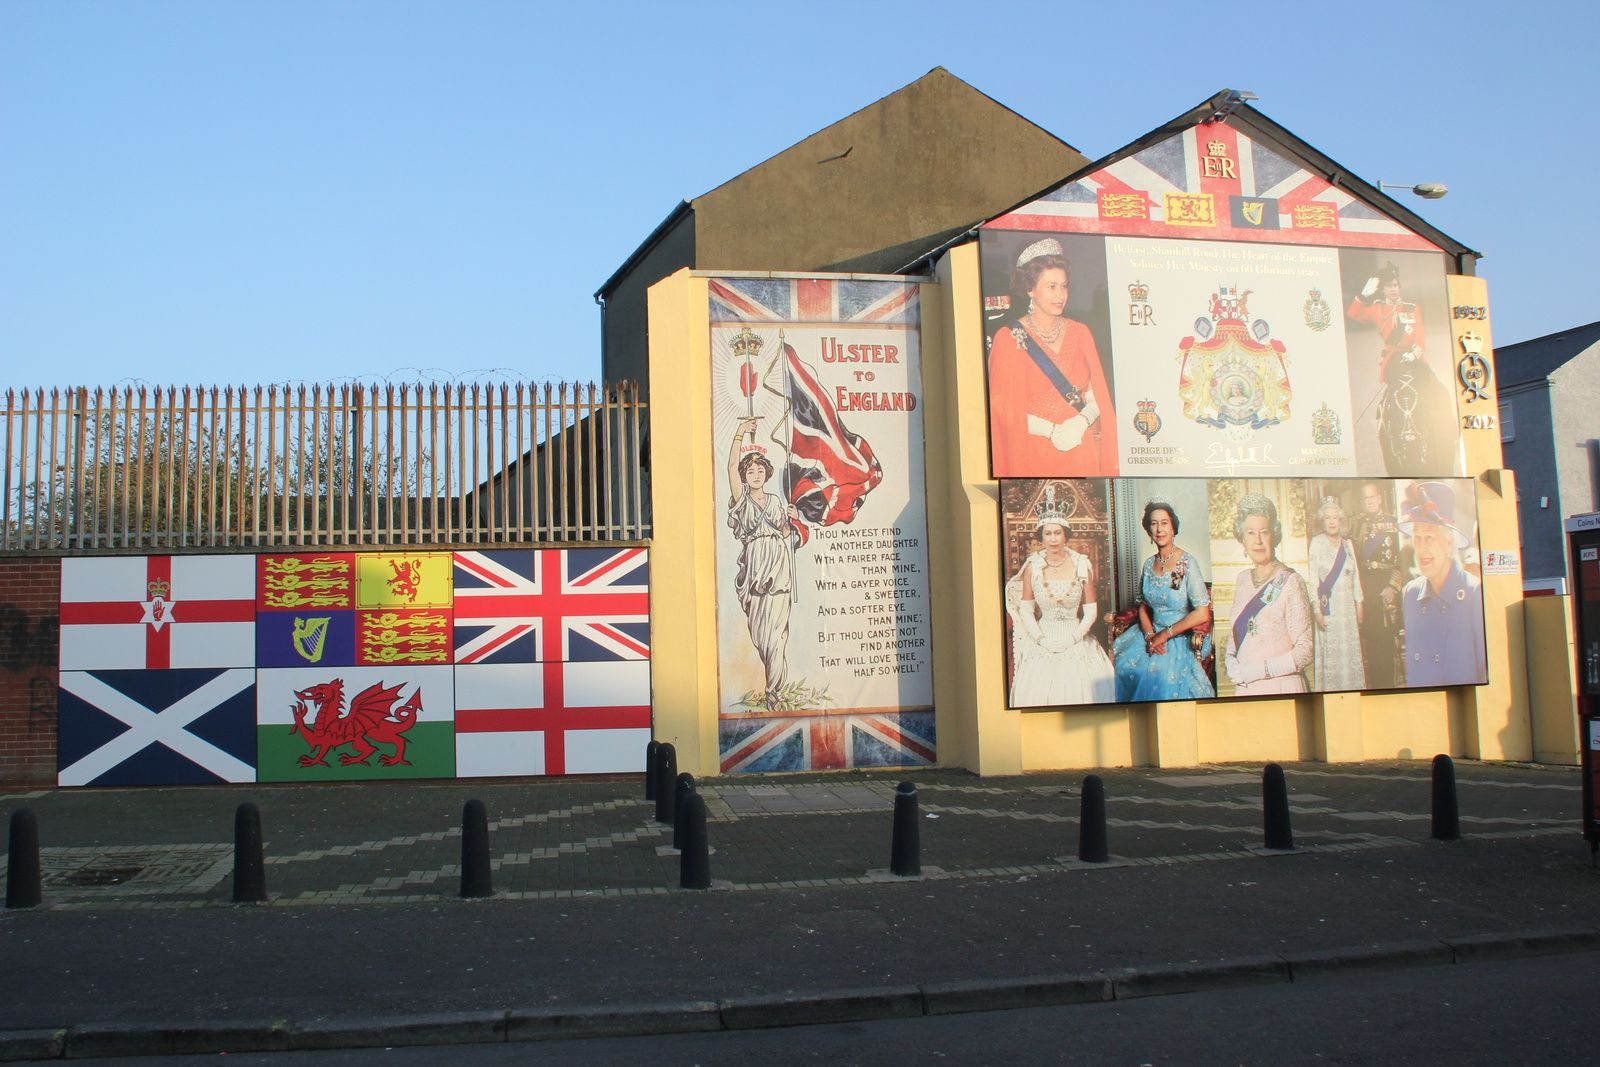 482) Crimea Street, Shankill, West Belfast